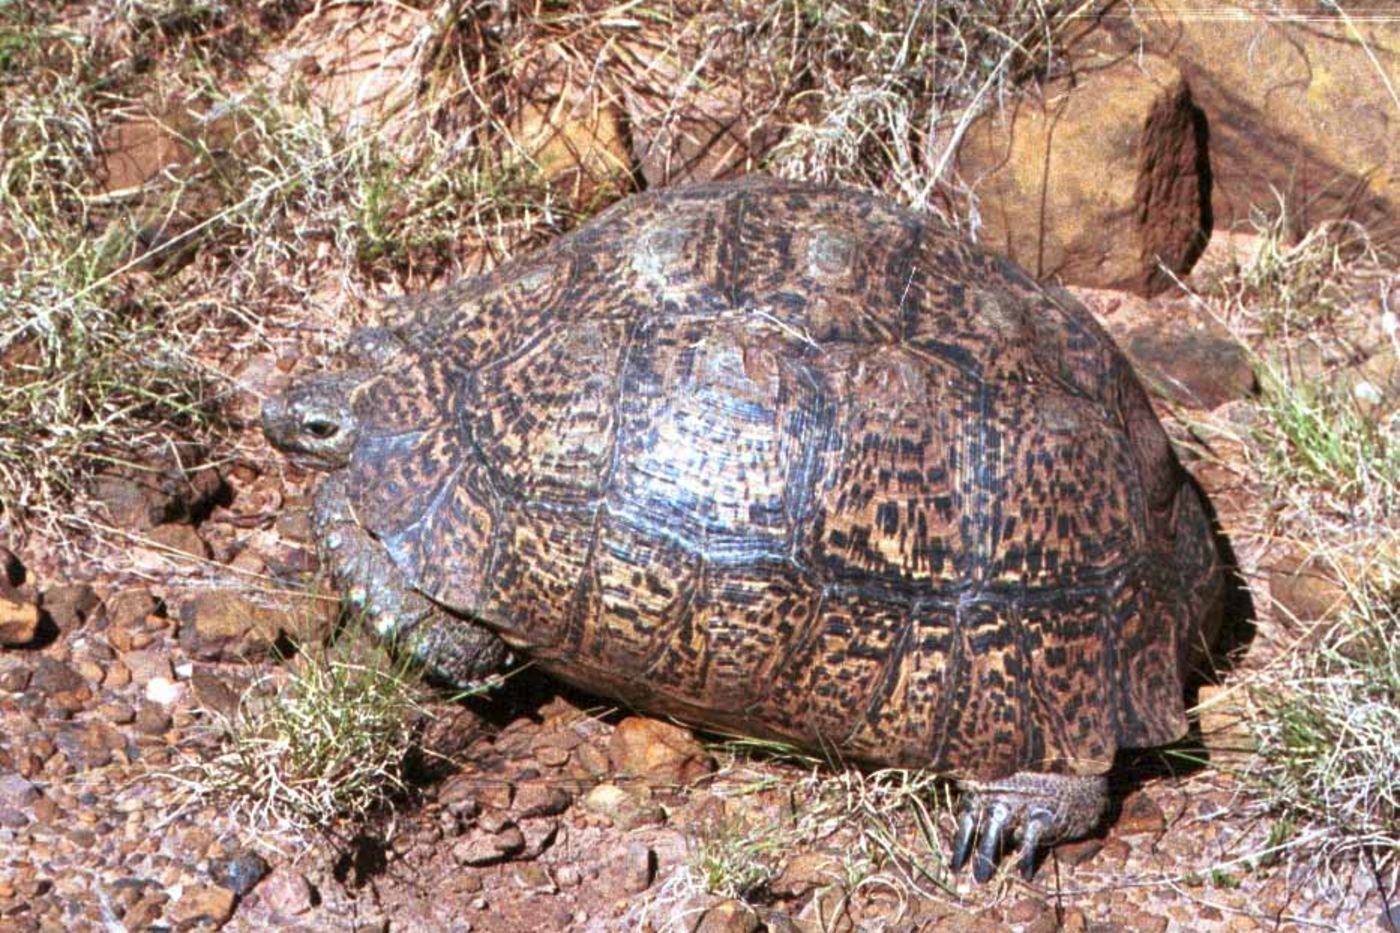 A large brown turtle with a tall shell sitting among brown rocks, dirt, and dried grass